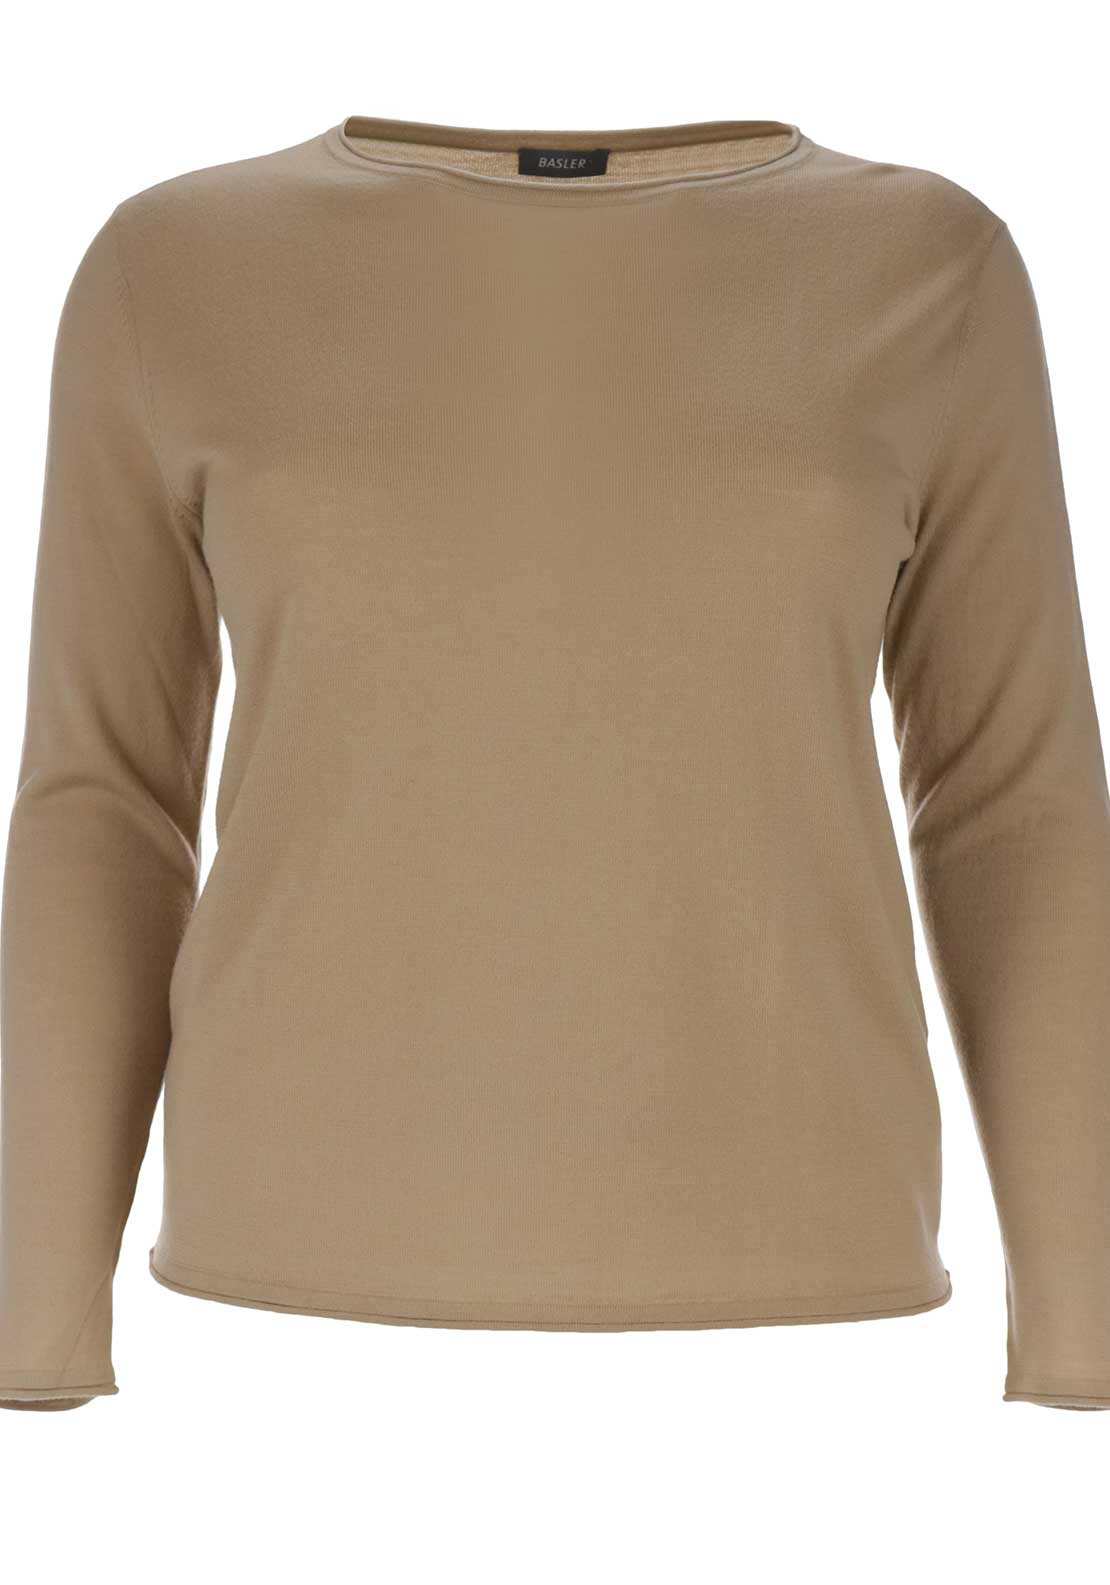 Basler Wool Sweater Jumper, Tan